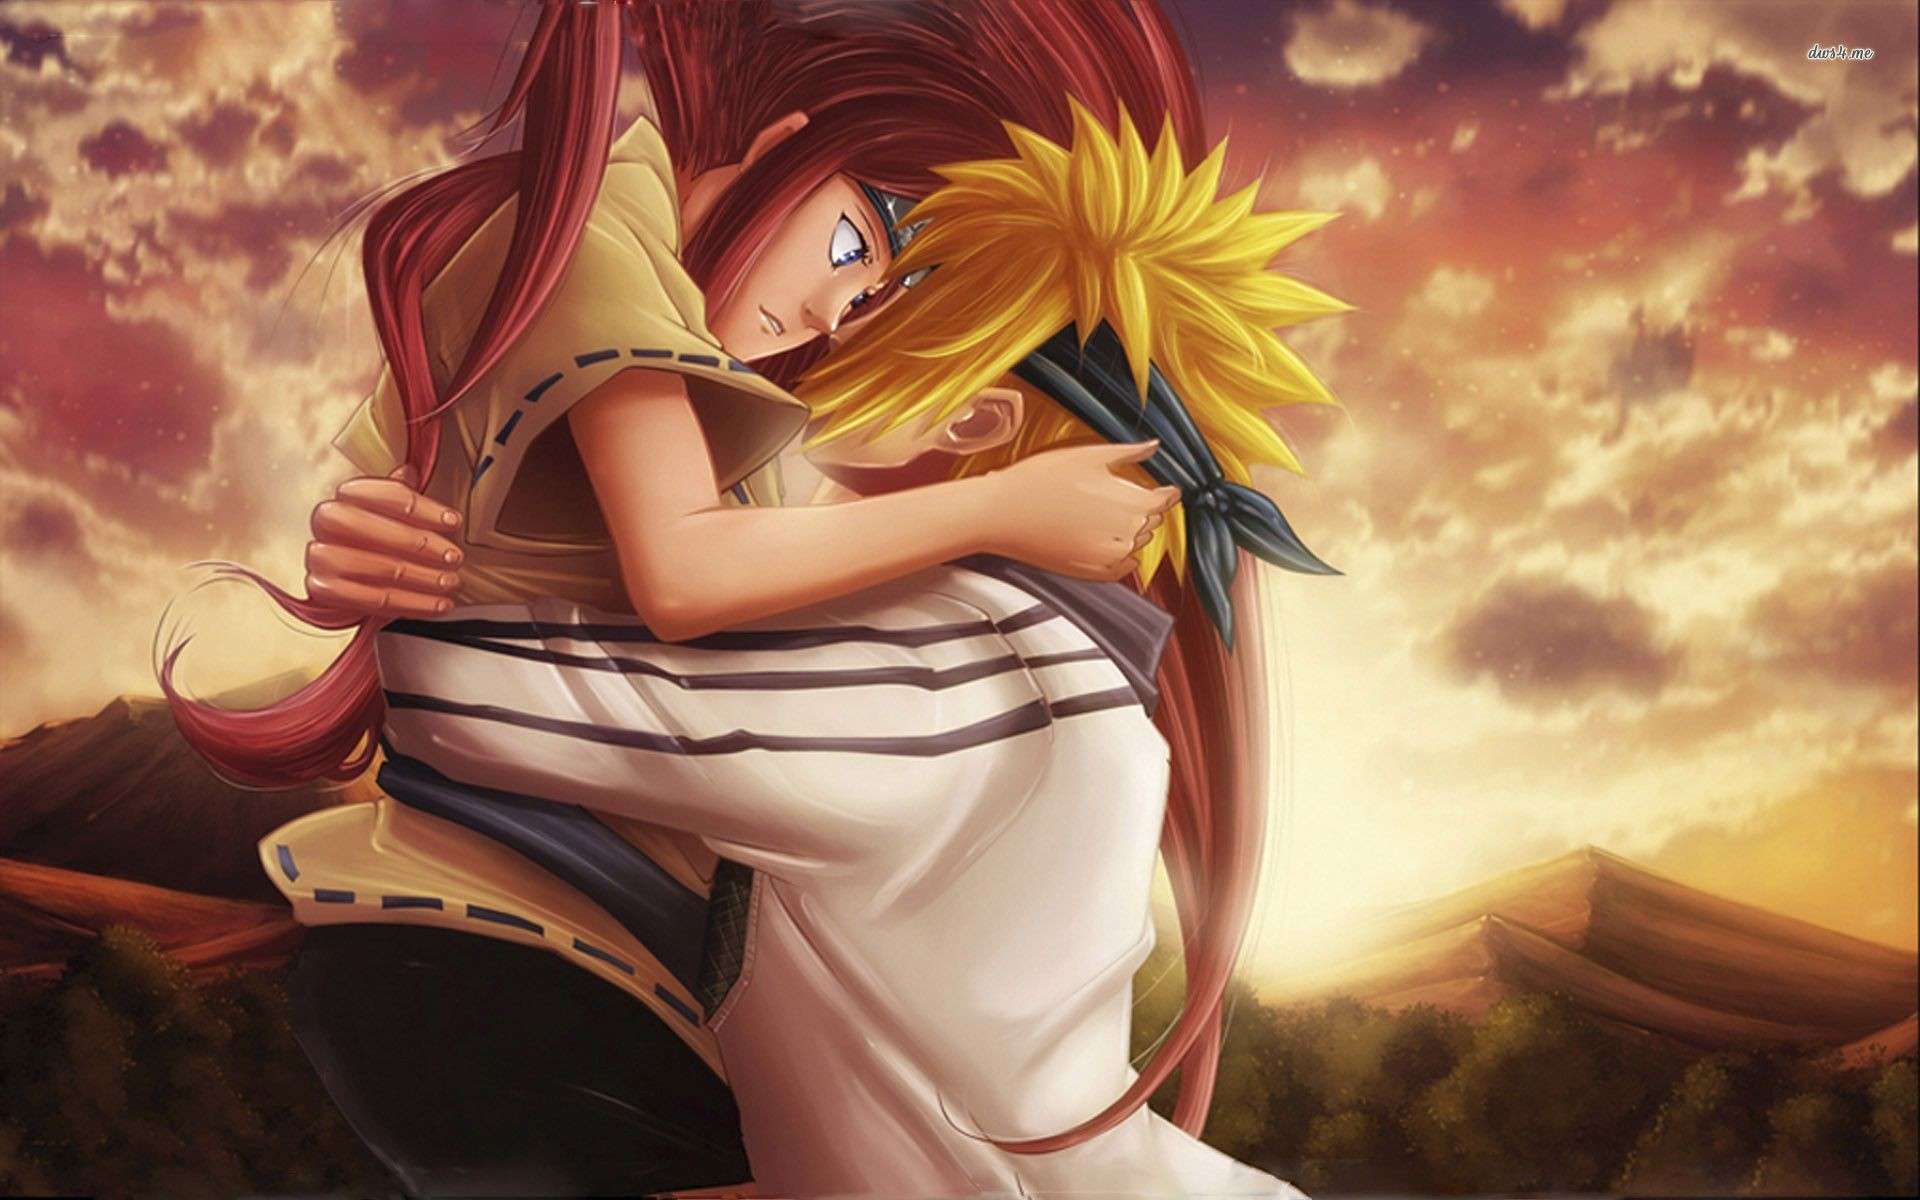 Wonderful Wallpaper Naruto Good - 920162-popular-naruto-best-wallpapers-1920x1200-for-full-hd  Perfect Image Reference_548517.jpg